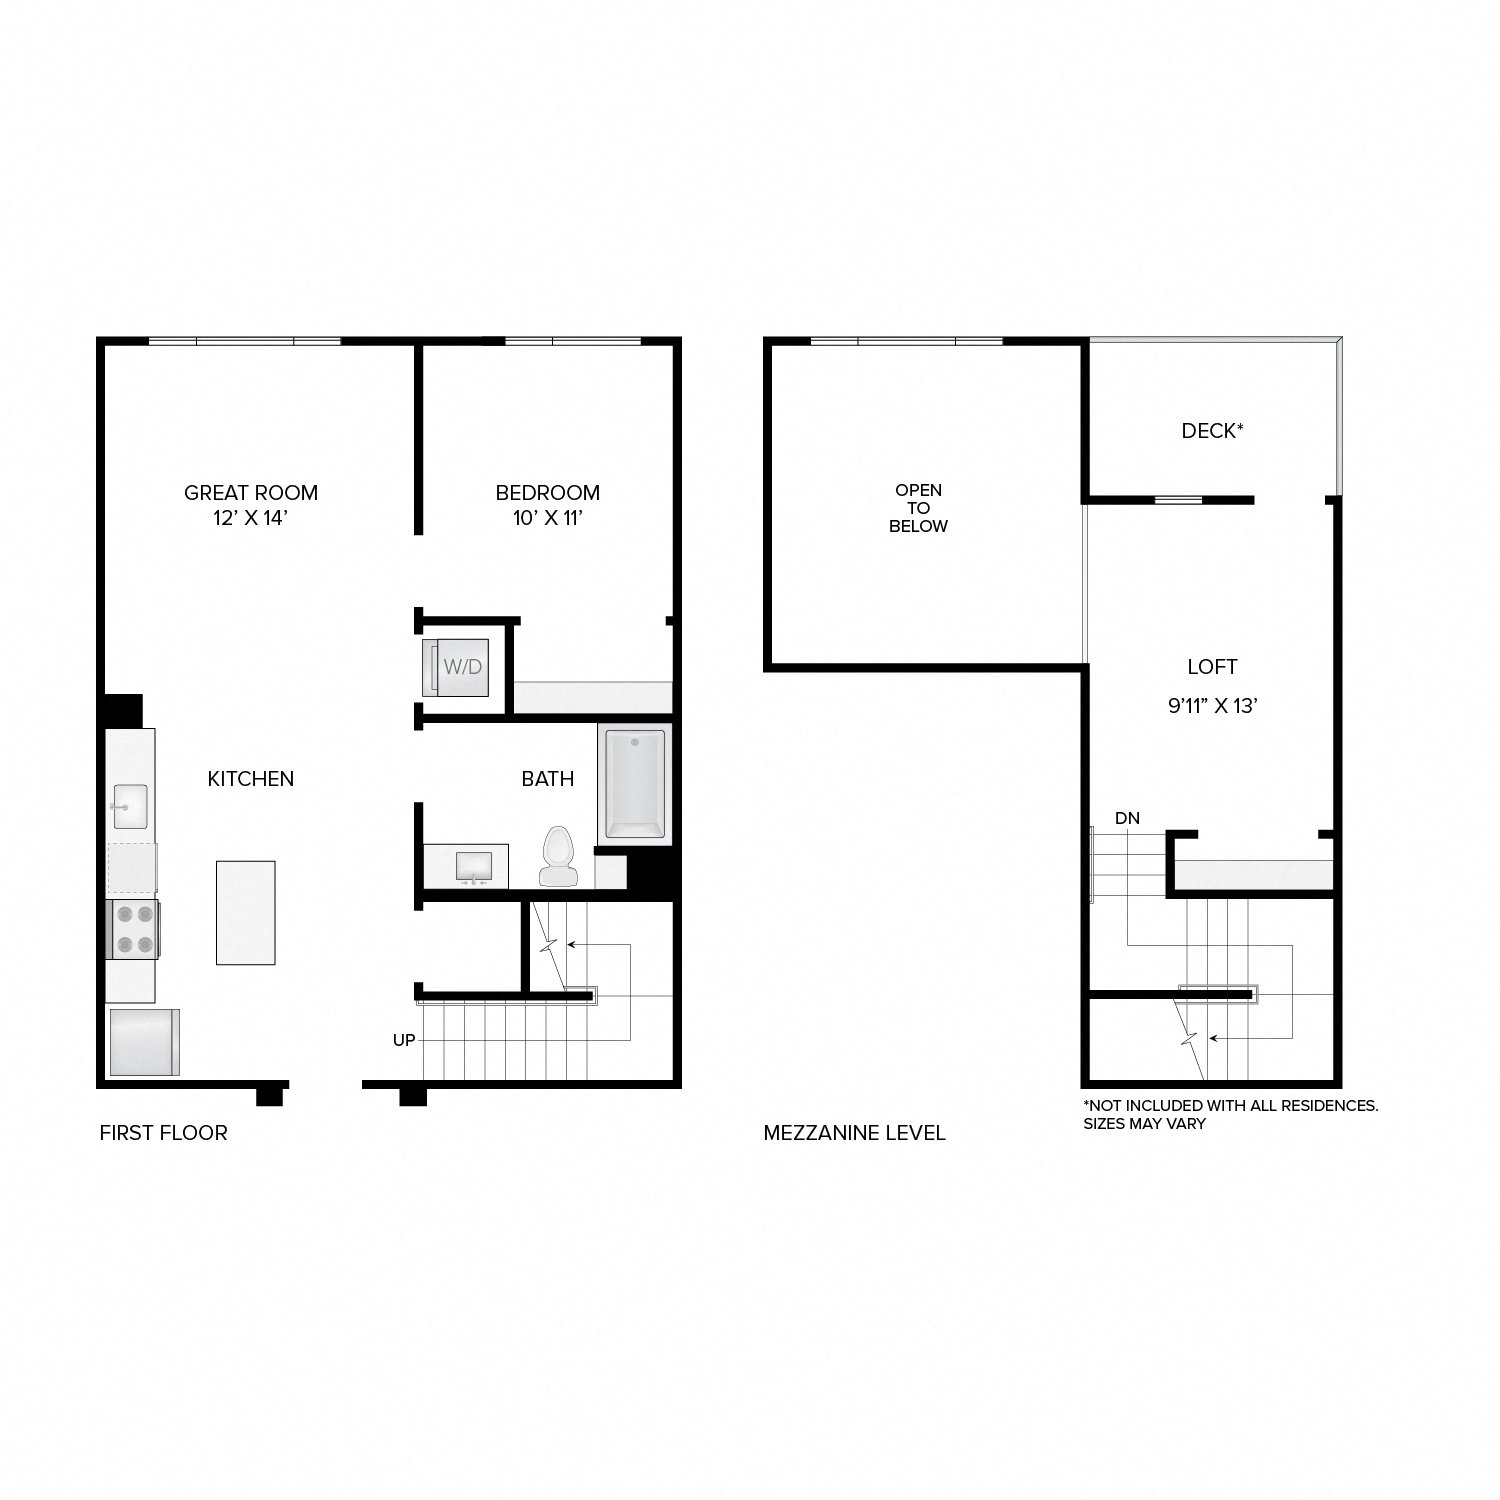 Diagram of the Webster Loft floor plan. One bedroom, one bathroom, a loft, an open kitchen and living area, a washer dryer, and in select residences, a deck.